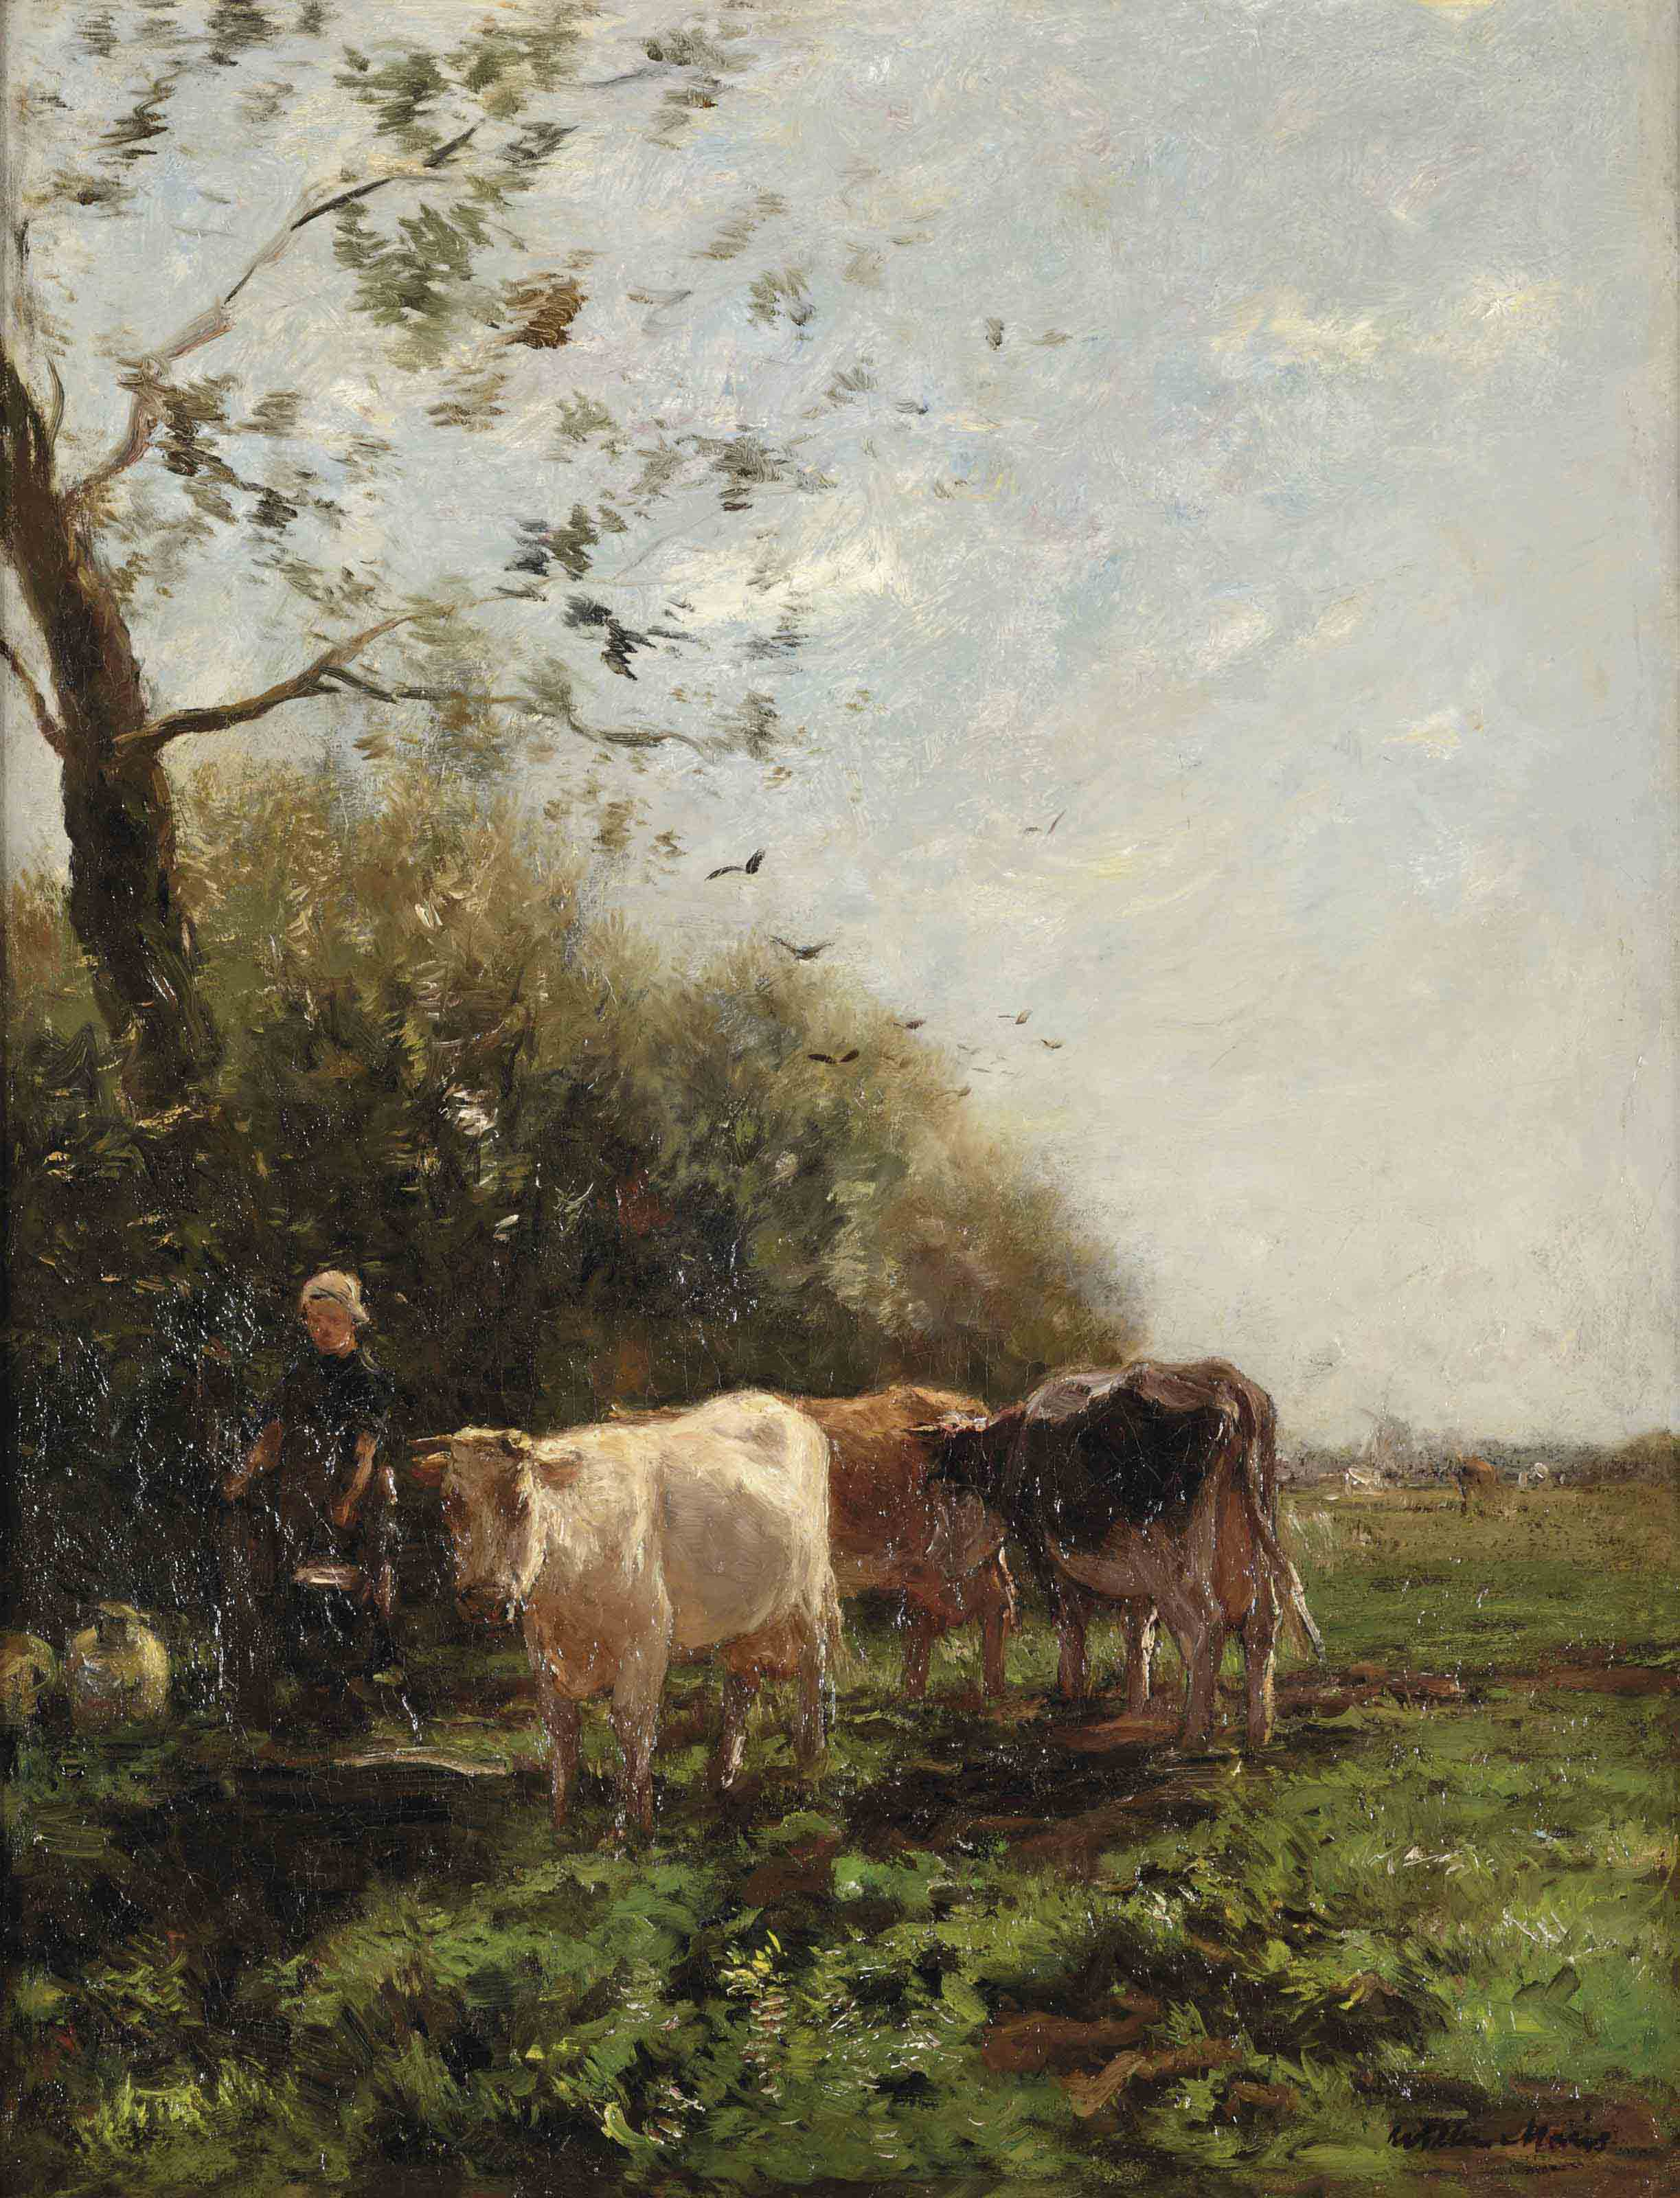 A farmer's wife with grazing cows